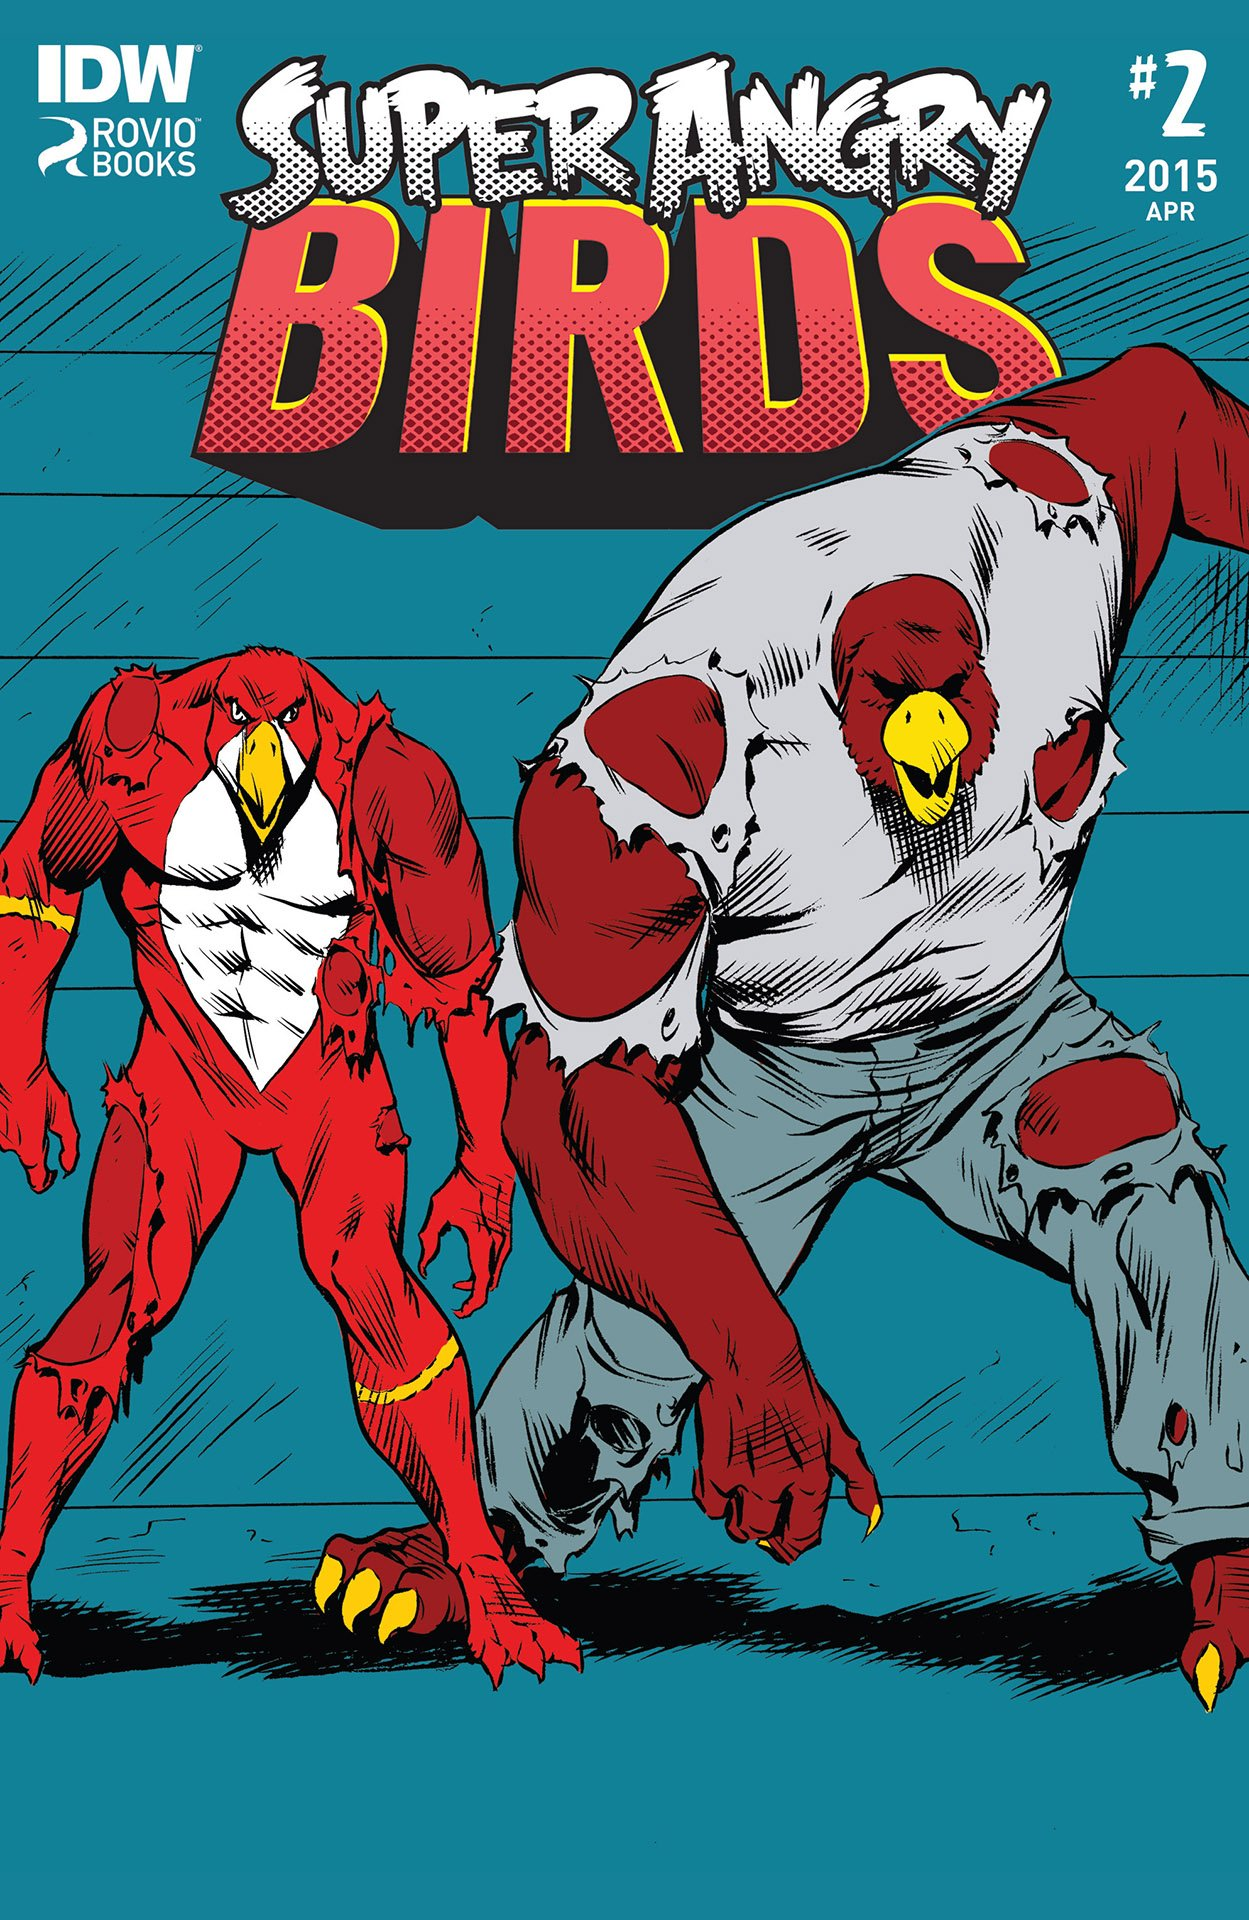 Super Angry Birds 02 (April 2015)